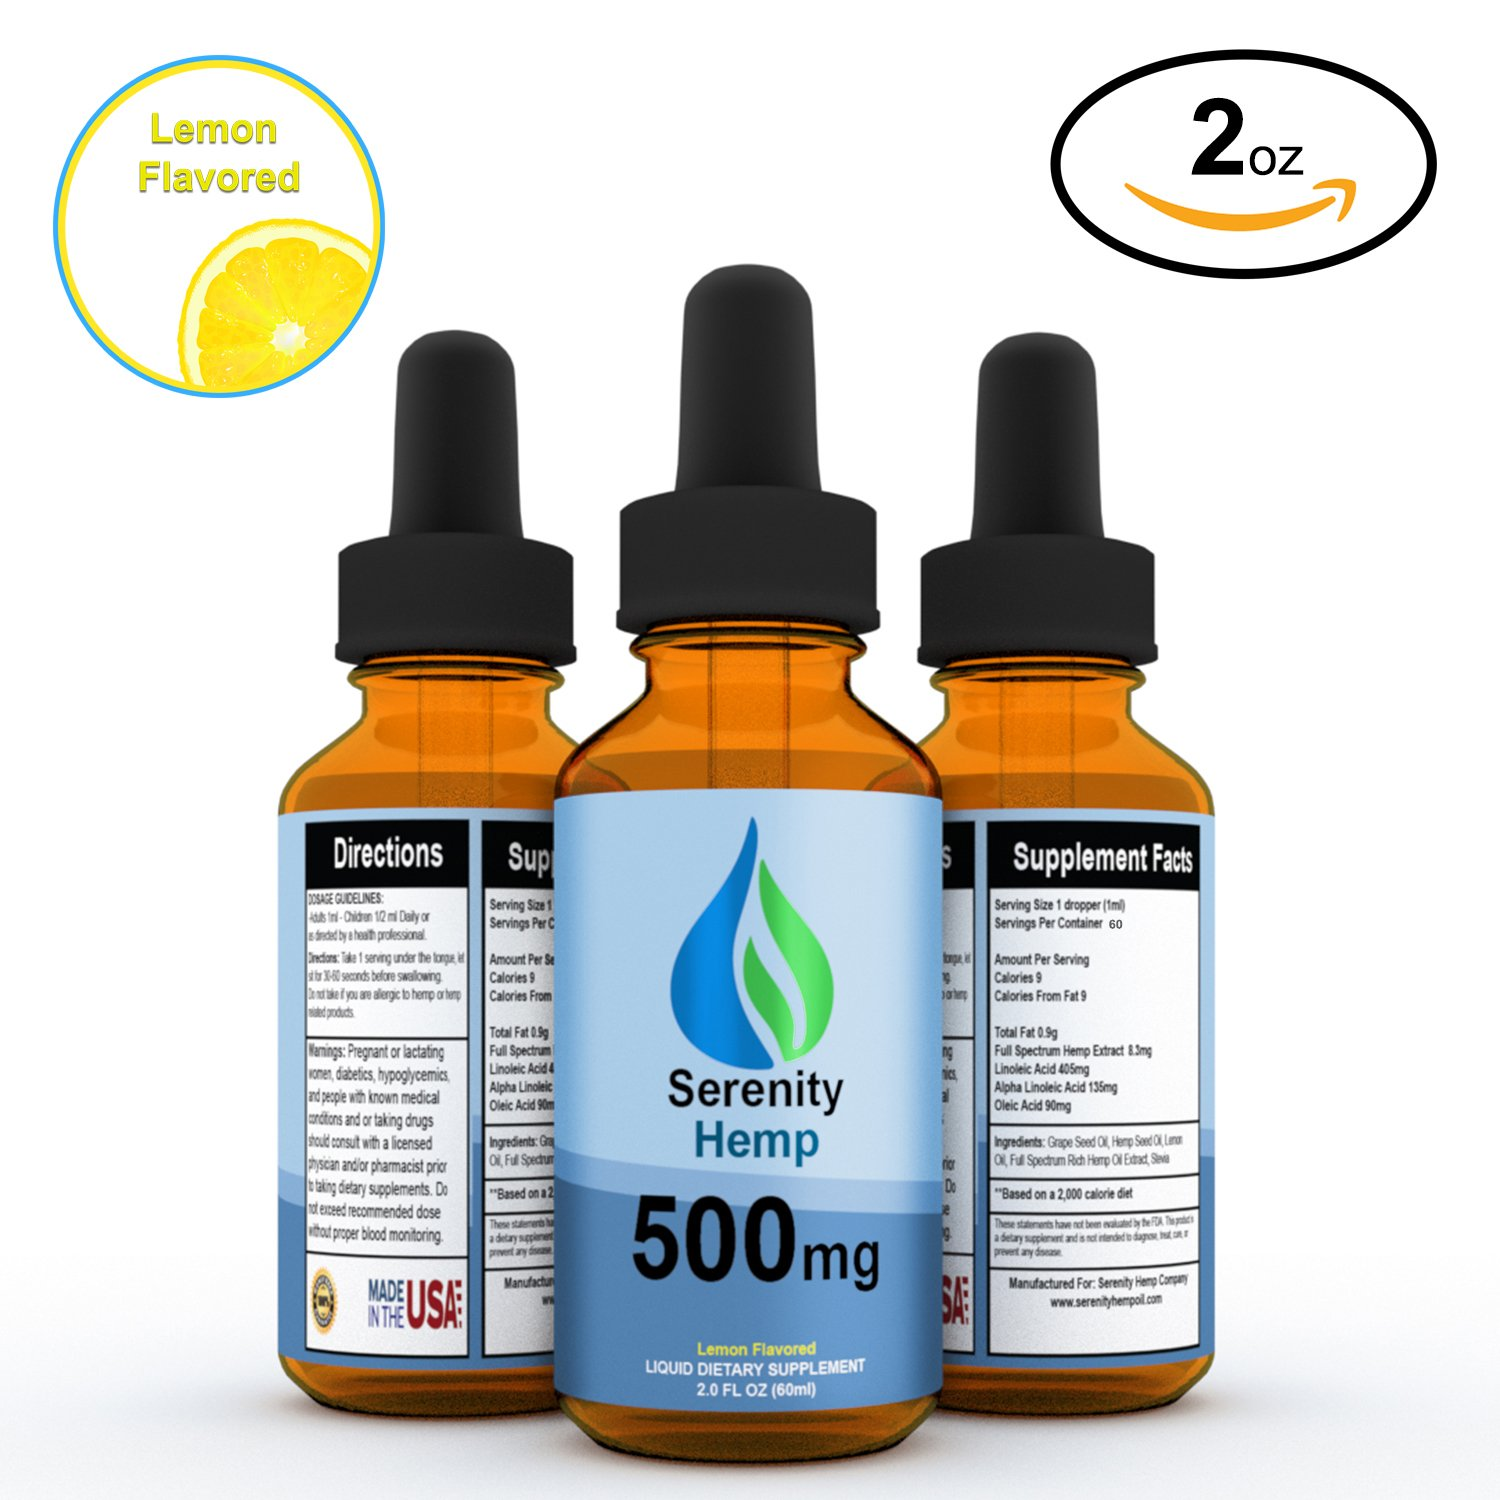 Serenity Hemp Oil - Lemon Flavor - 2 fl oz 500mg - Certified Organic - Relief for Stress, Inflammation, Pain, Sleep, Anxiety, Depression, Nausea - rich in Vitamin E, Vitamin B, Omega 3,6,9 and MORE